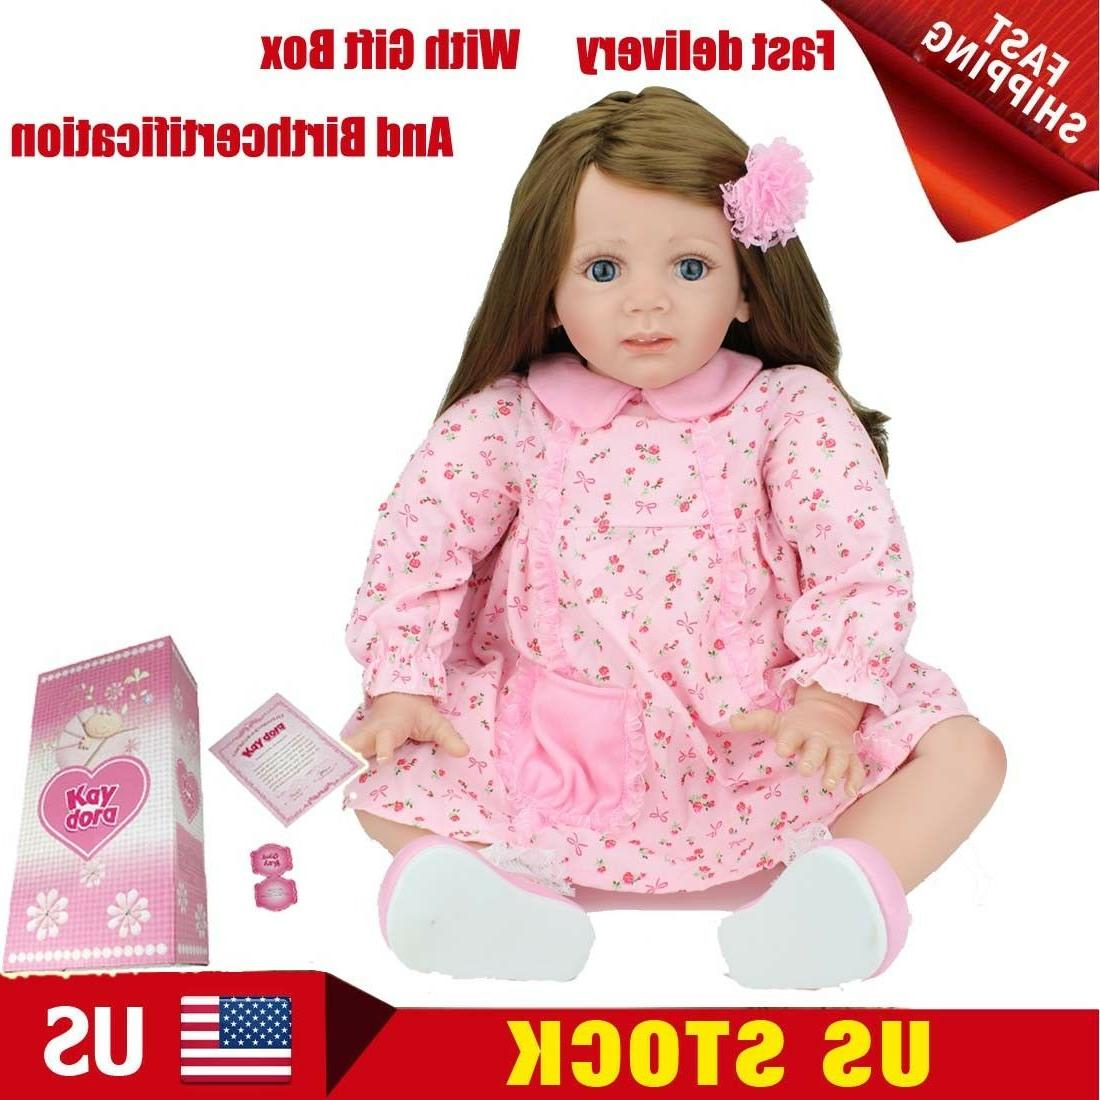 boxed 22 inch toddler reborn baby dolls